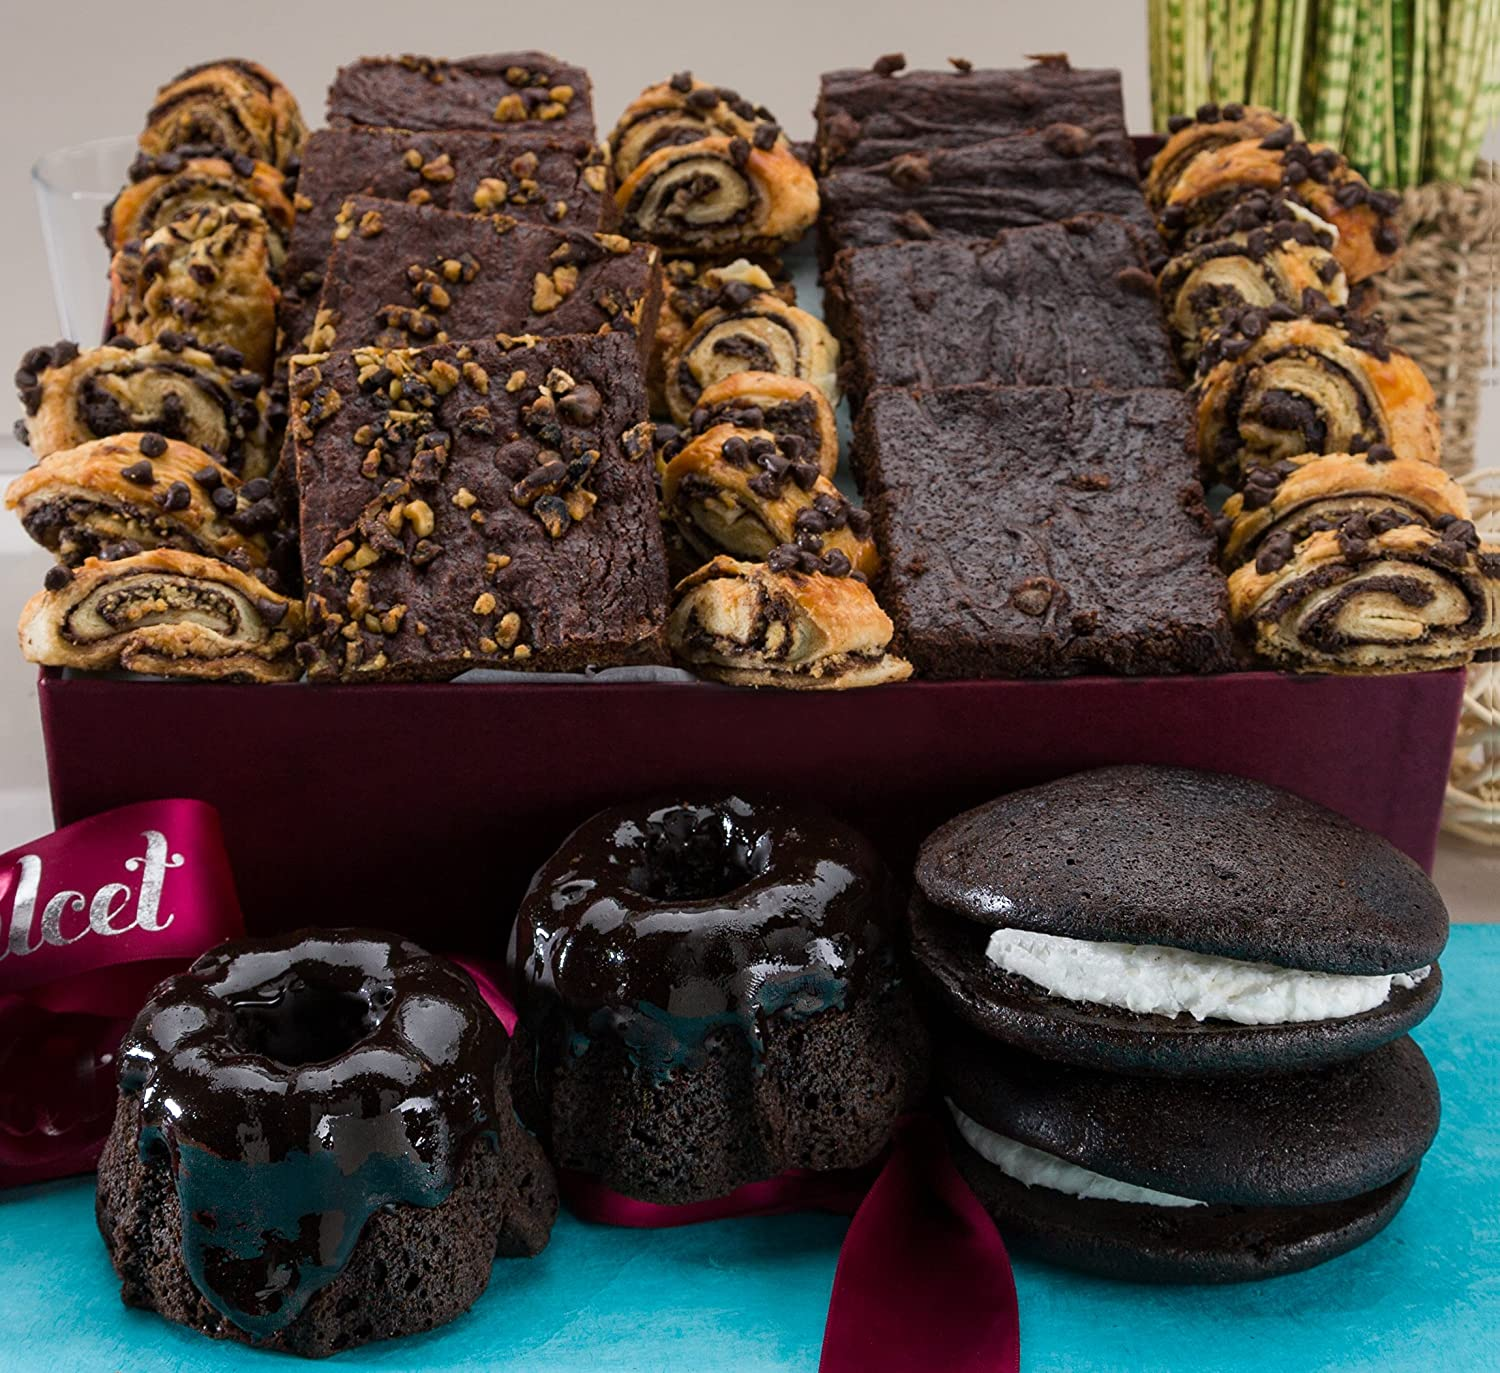 Gourmet Chocolate Lovers #1 Brownie Ganache Bakery Collection Filled with: Chocolate Bundts, Chocolate Brownies, Chocolate Whoopee Pies, Assorted Rugelach, great gourmet gift basket!